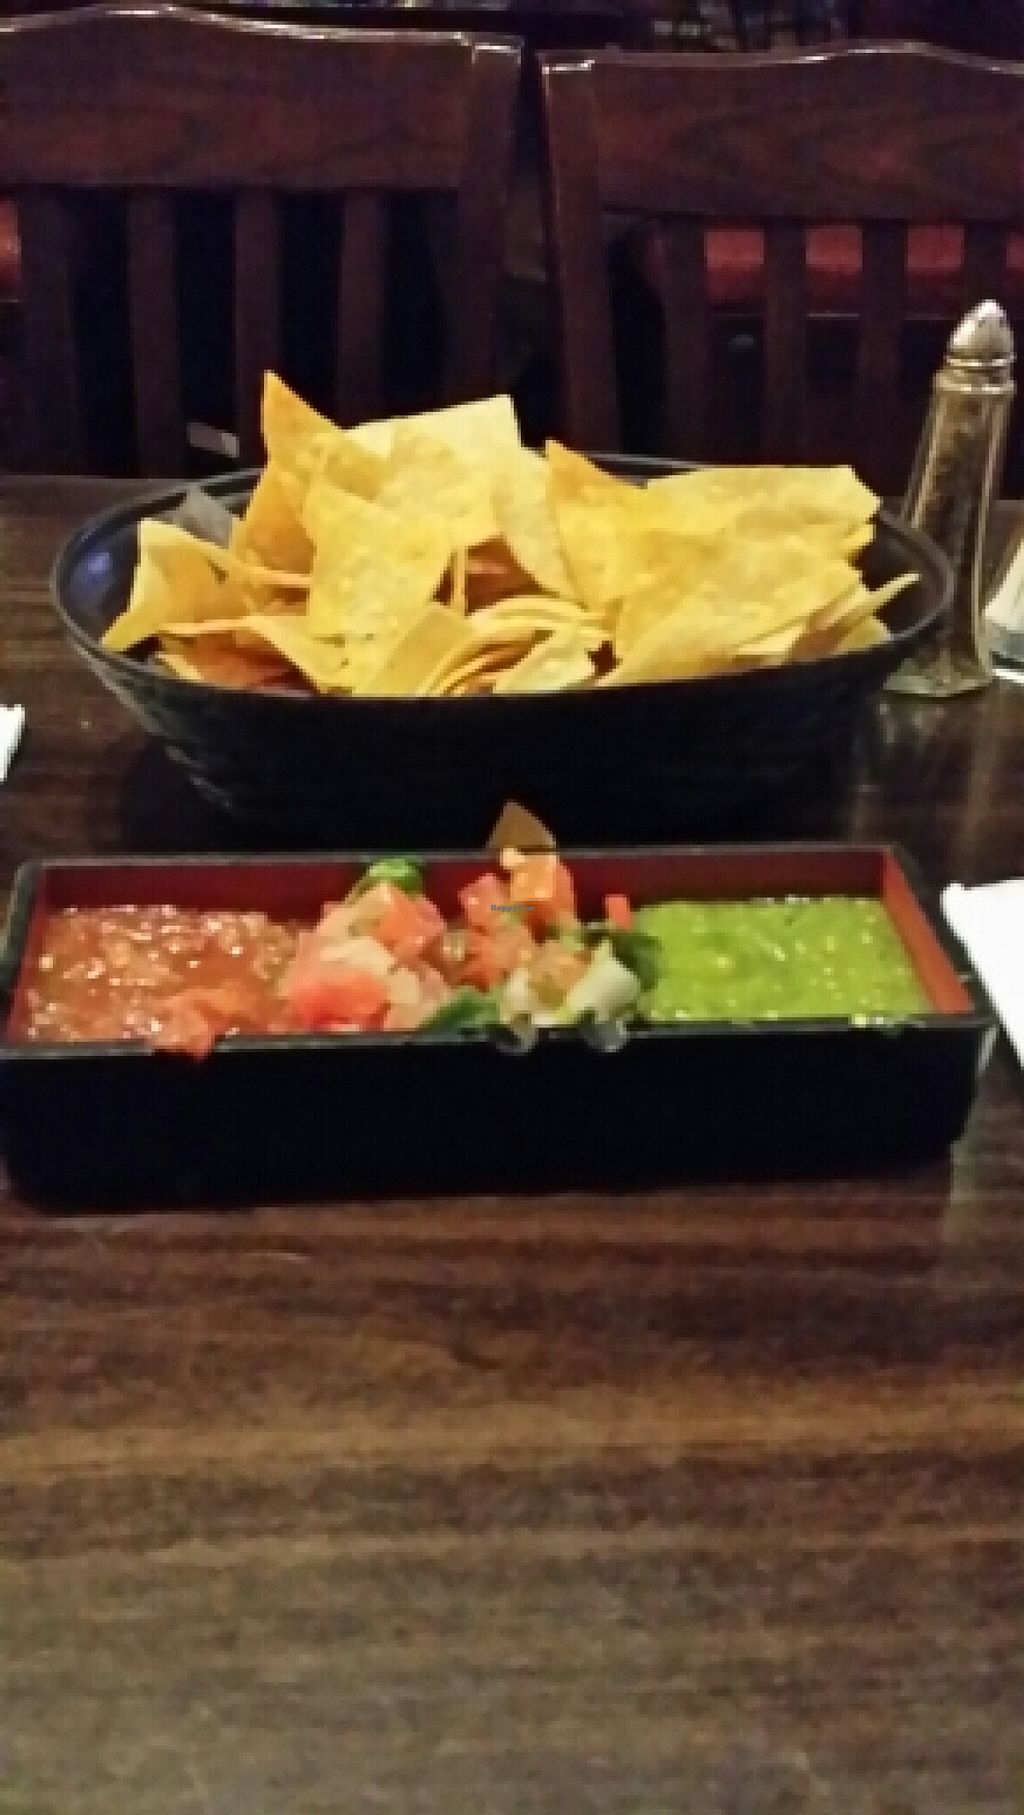 """Photo of Camino Real Kitchen and Tequila  by <a href=""""/members/profile/catbone"""">catbone</a> <br/>House-Hade Chips&Tri-Salsa Display! <br/> February 15, 2016  - <a href='/contact/abuse/image/60663/136450'>Report</a>"""